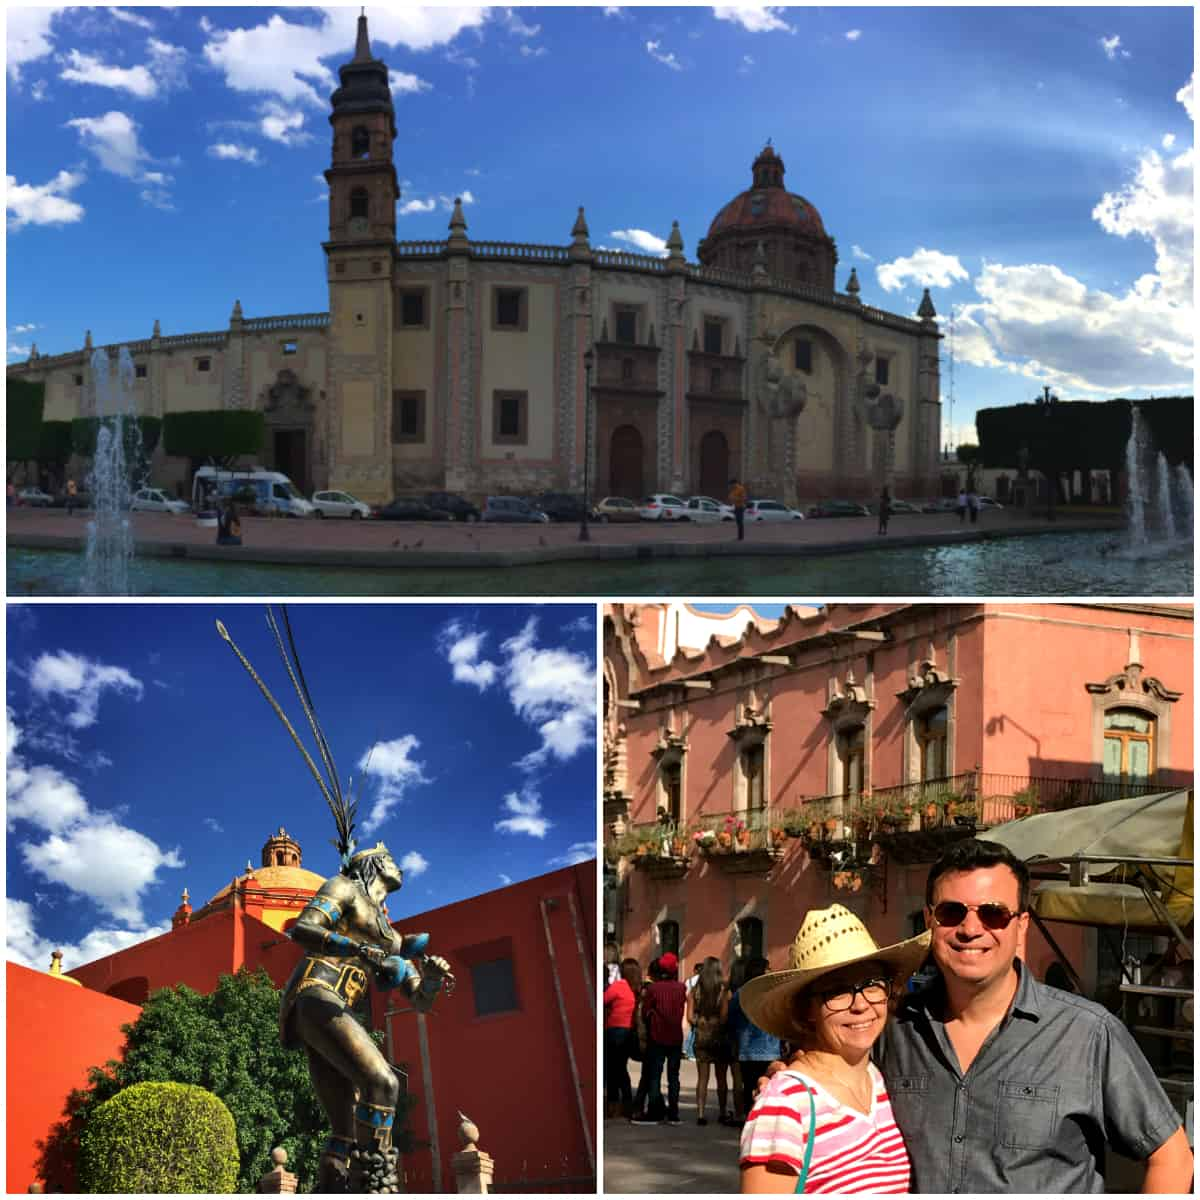 Collage of architecture in Queretaro